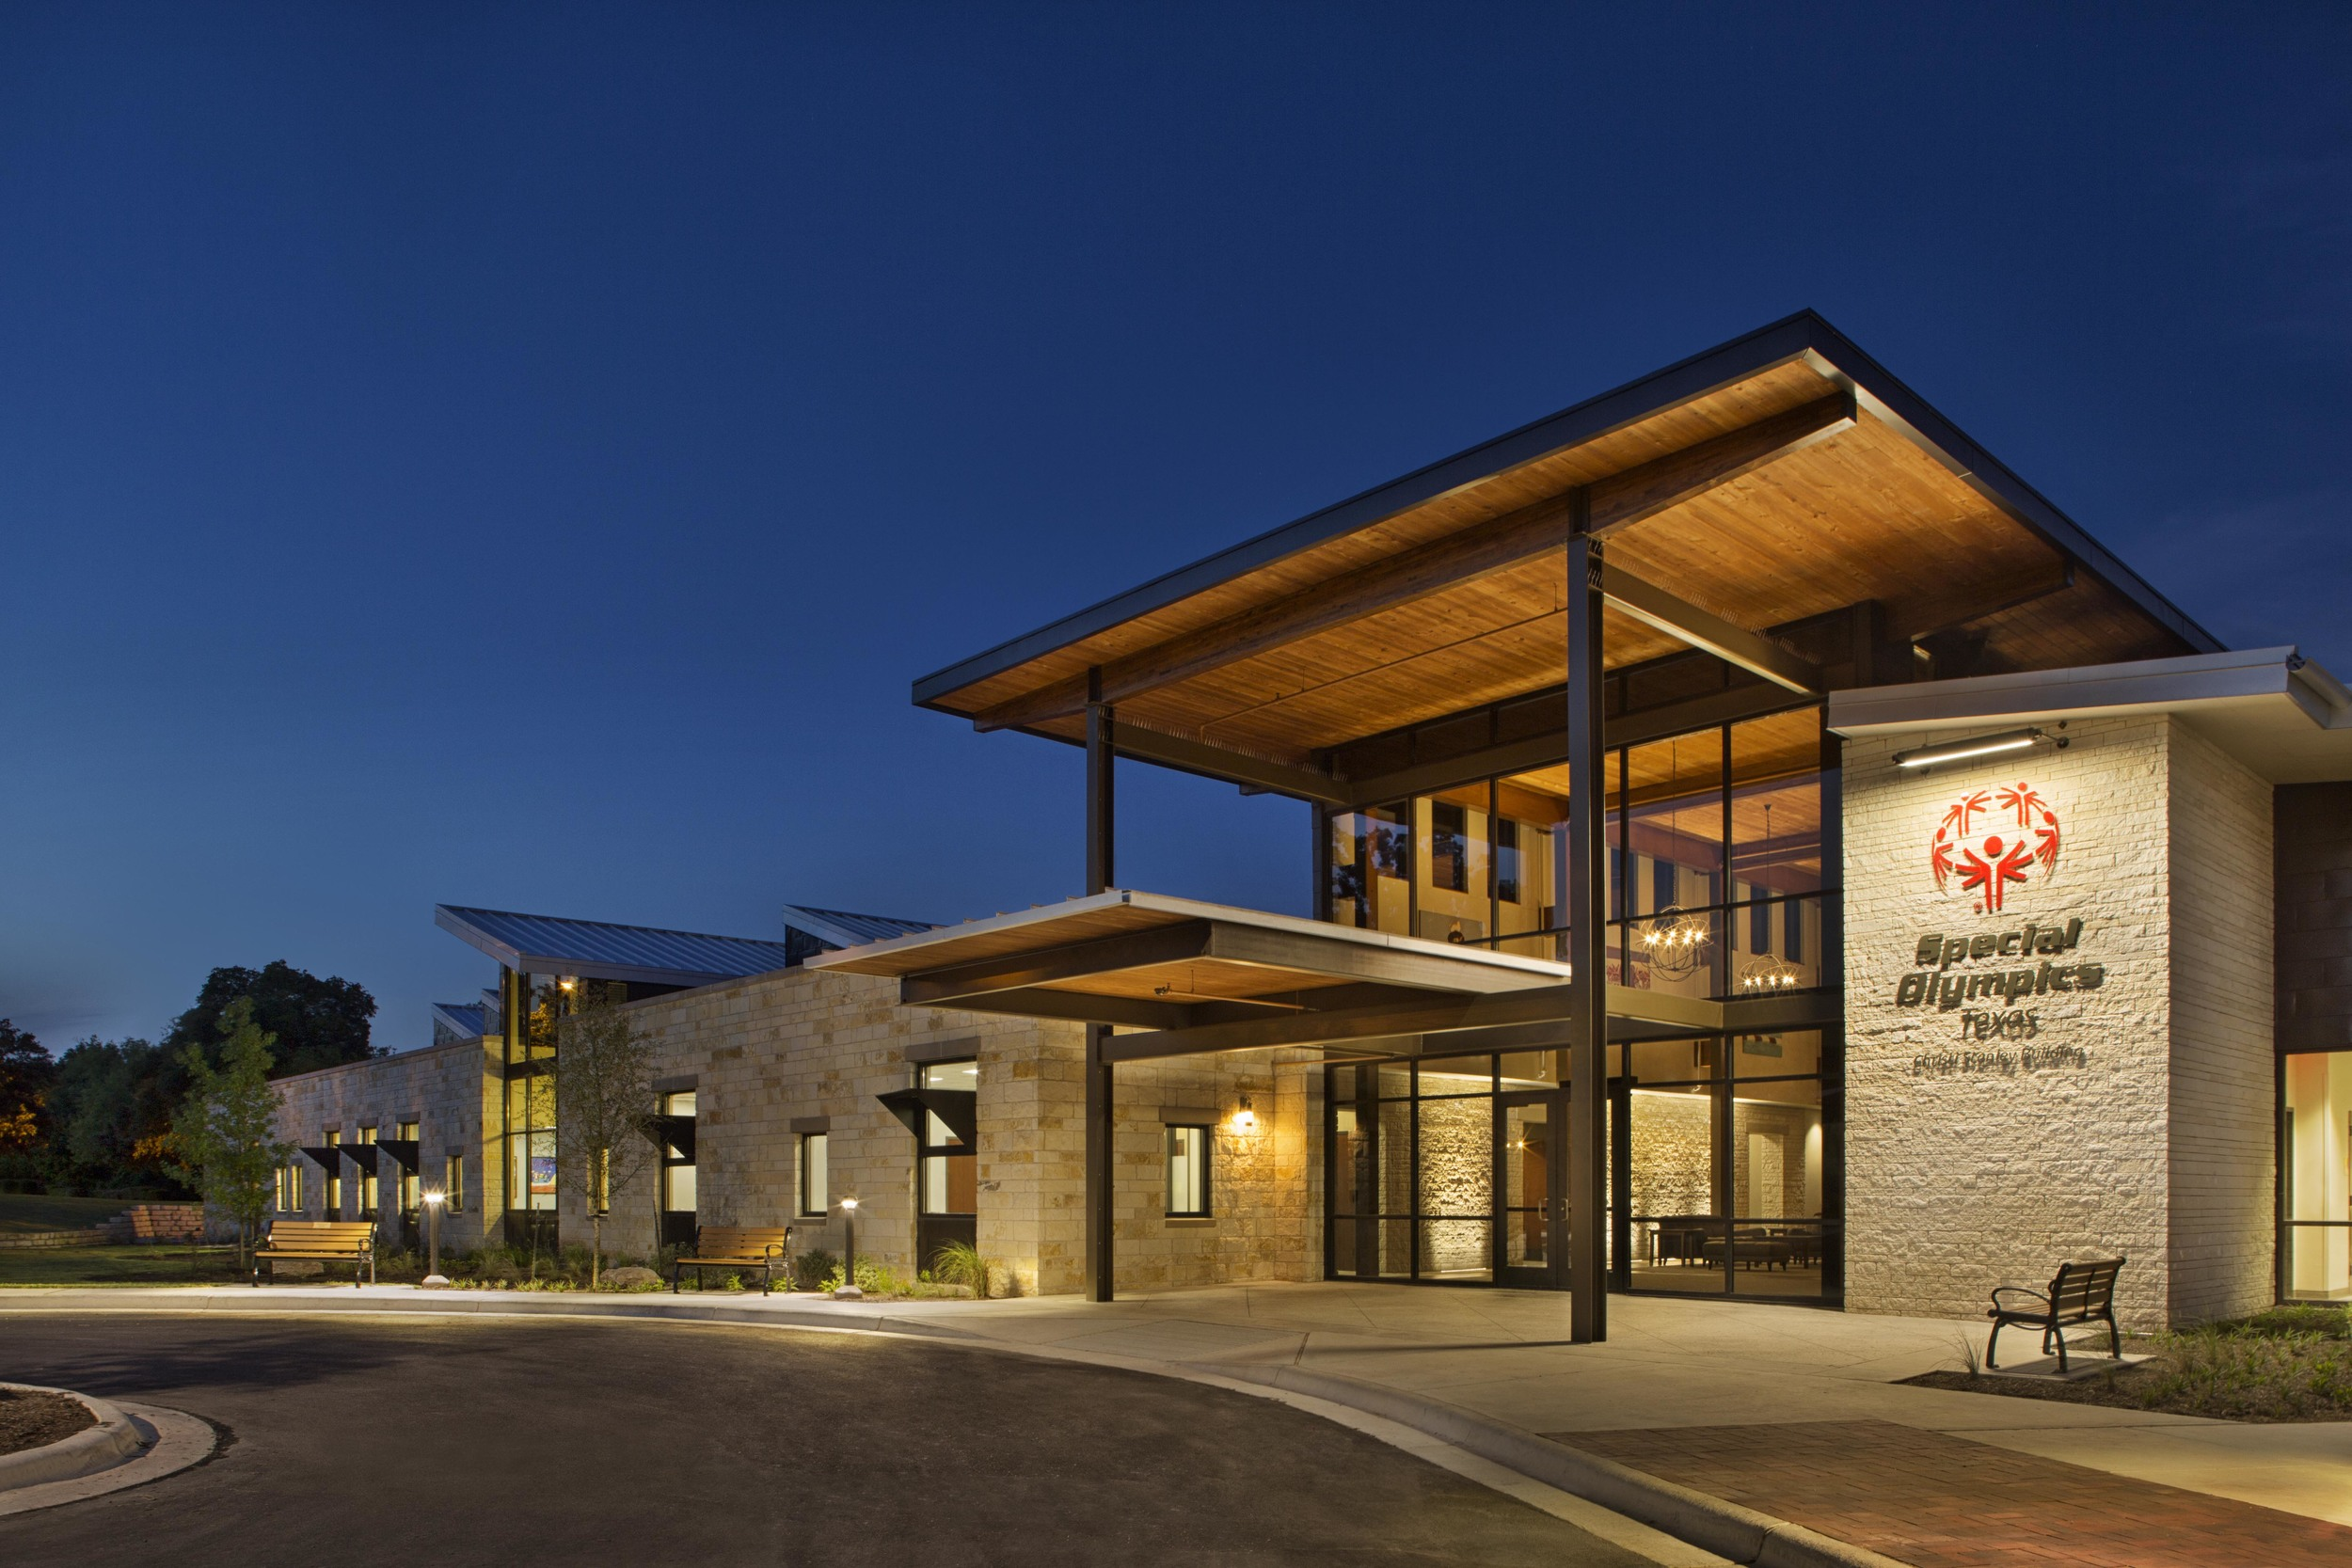 """It is my pleasure to recommend Jackson Galloway Associates Architects as an excellent, responsive group of design professionals....Their team showed skill in listening to us and gathering information while guiding our CEO and her team through the design process. The result is a building that represents our athletes and their many talents and a special place for Special Olympics families and employees to gather.  -Steve Hayes, Owner's Representative:"